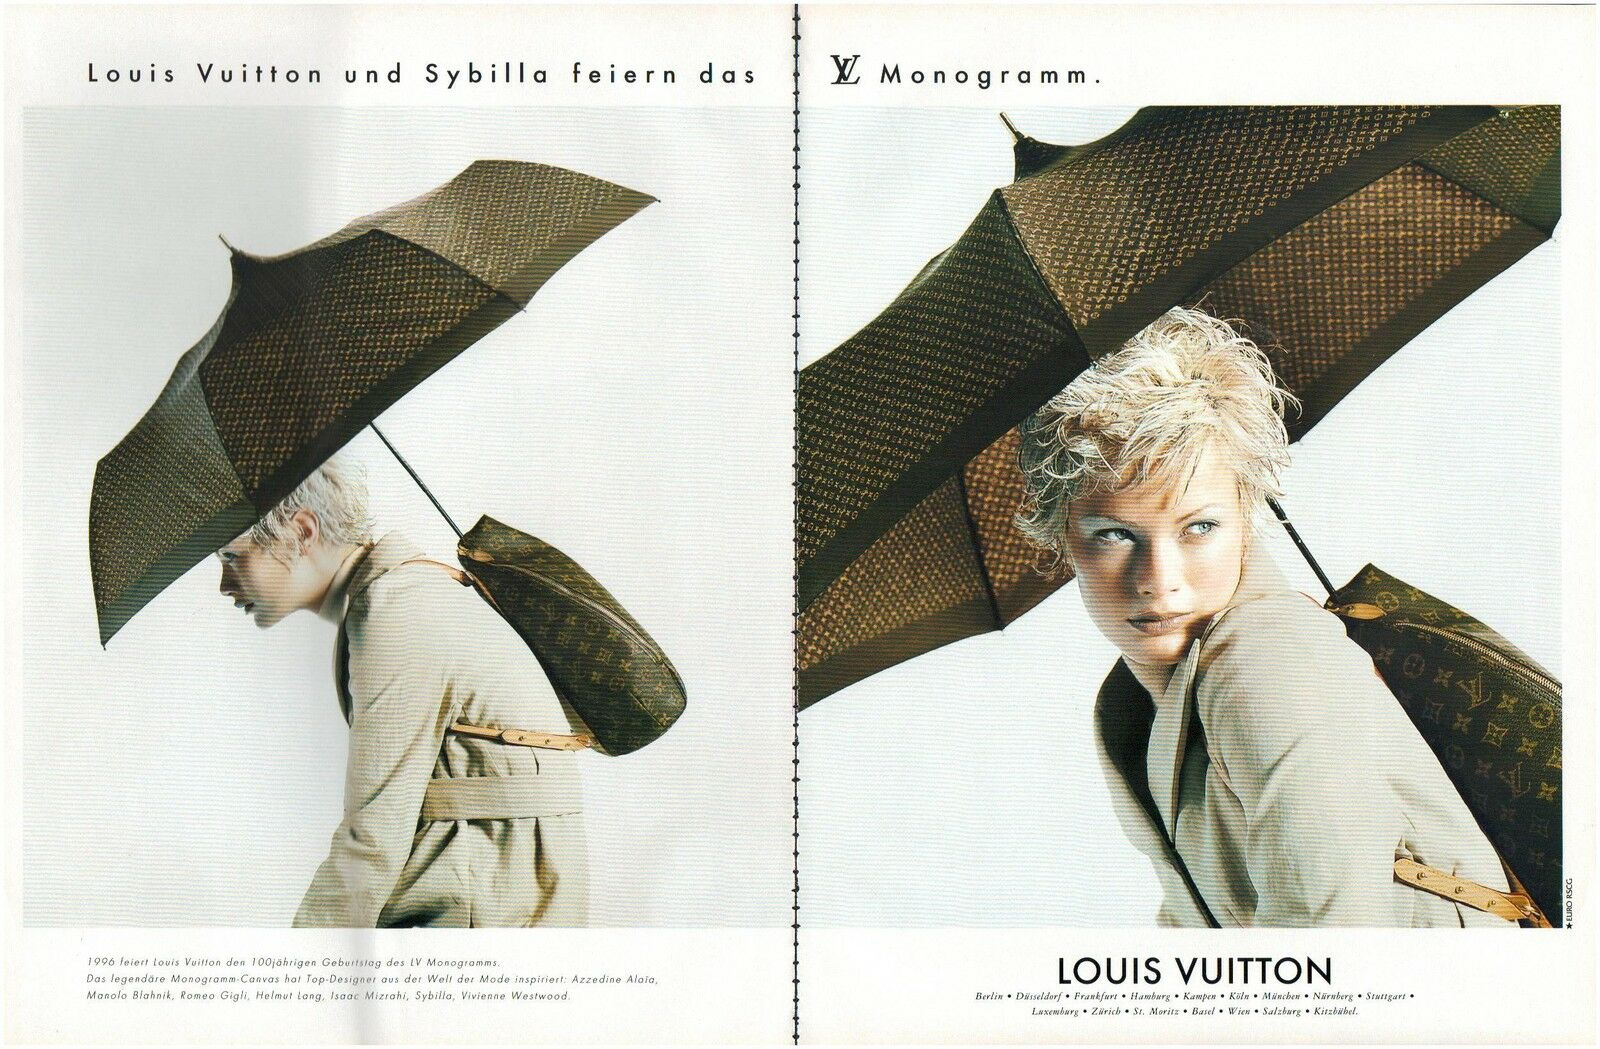 1996 Louis Vuitton